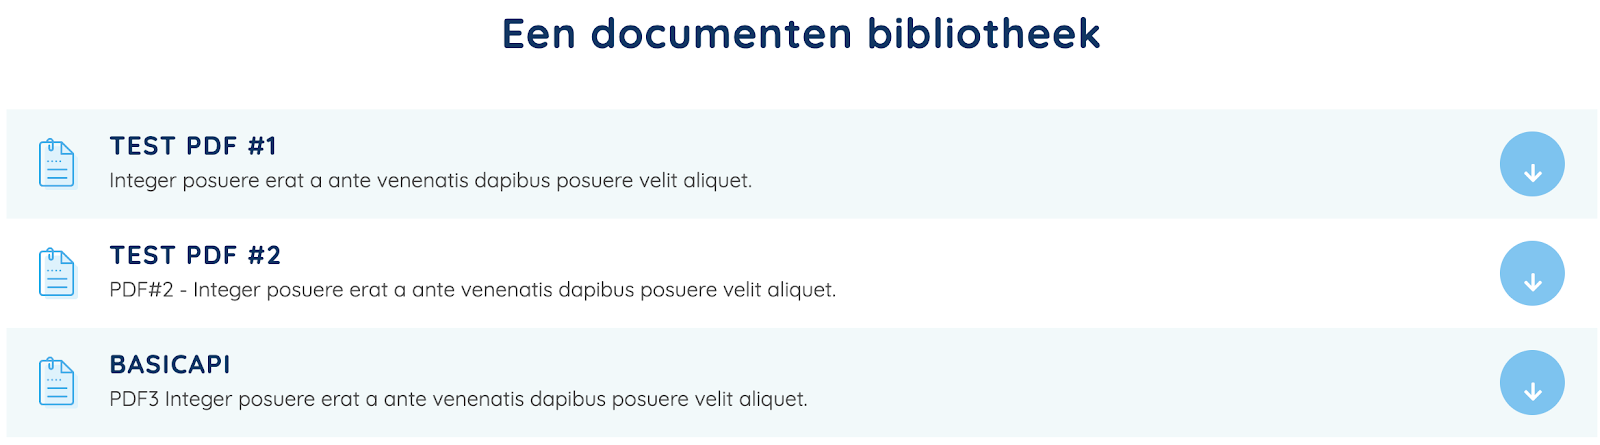 Voorbeeld documenten bibliotheek in de website